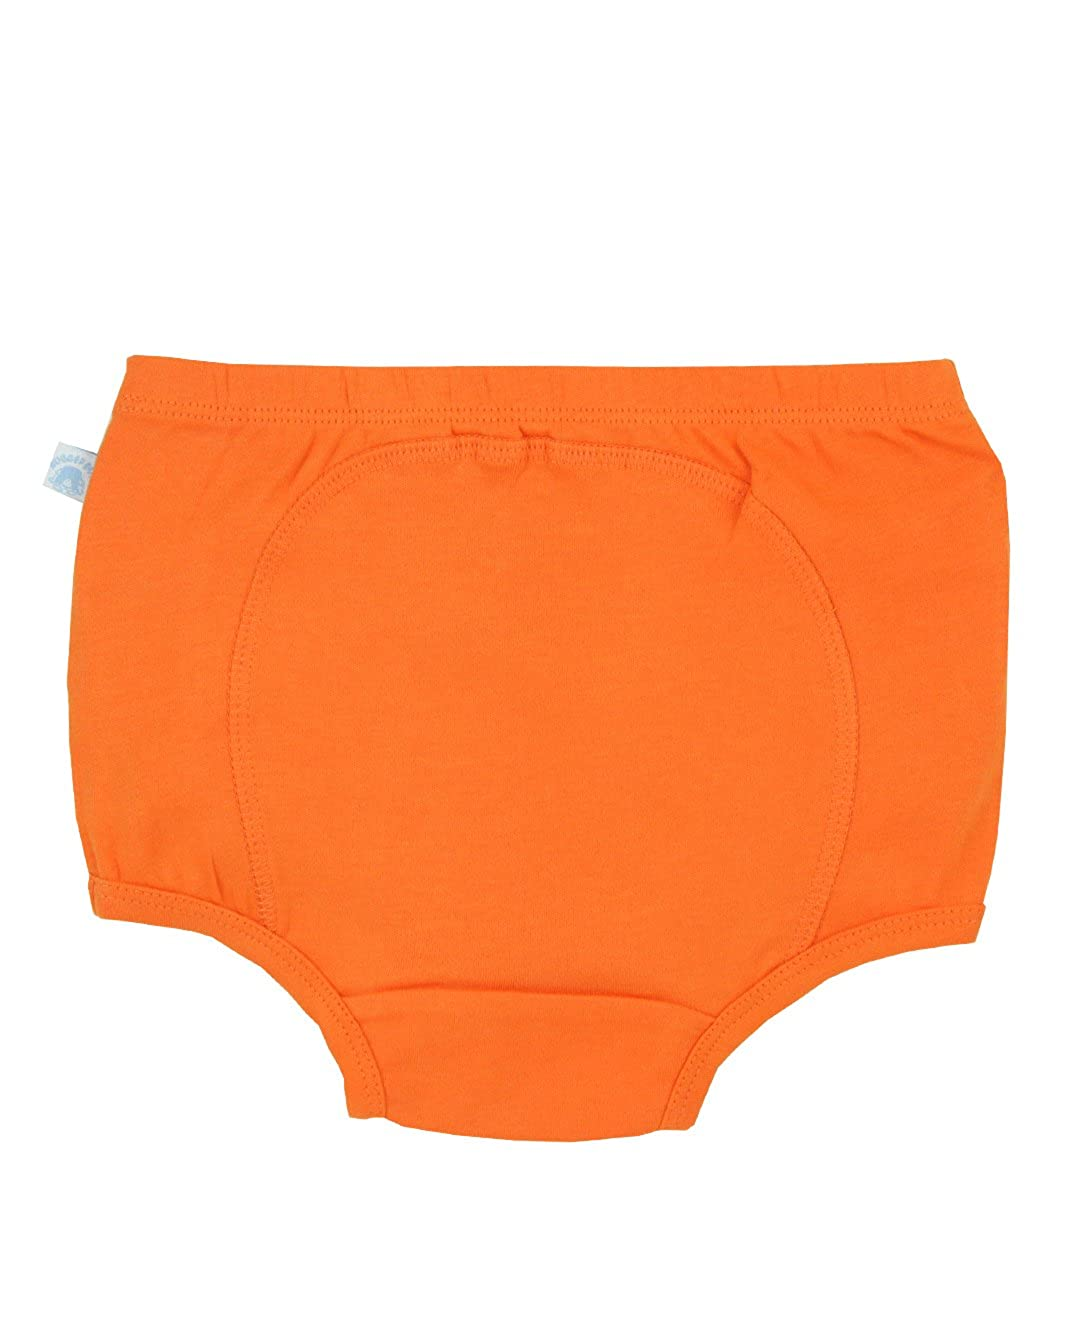 RuggedButts Baby//Toddler Boys Bright Stretchy Knit Bloomer